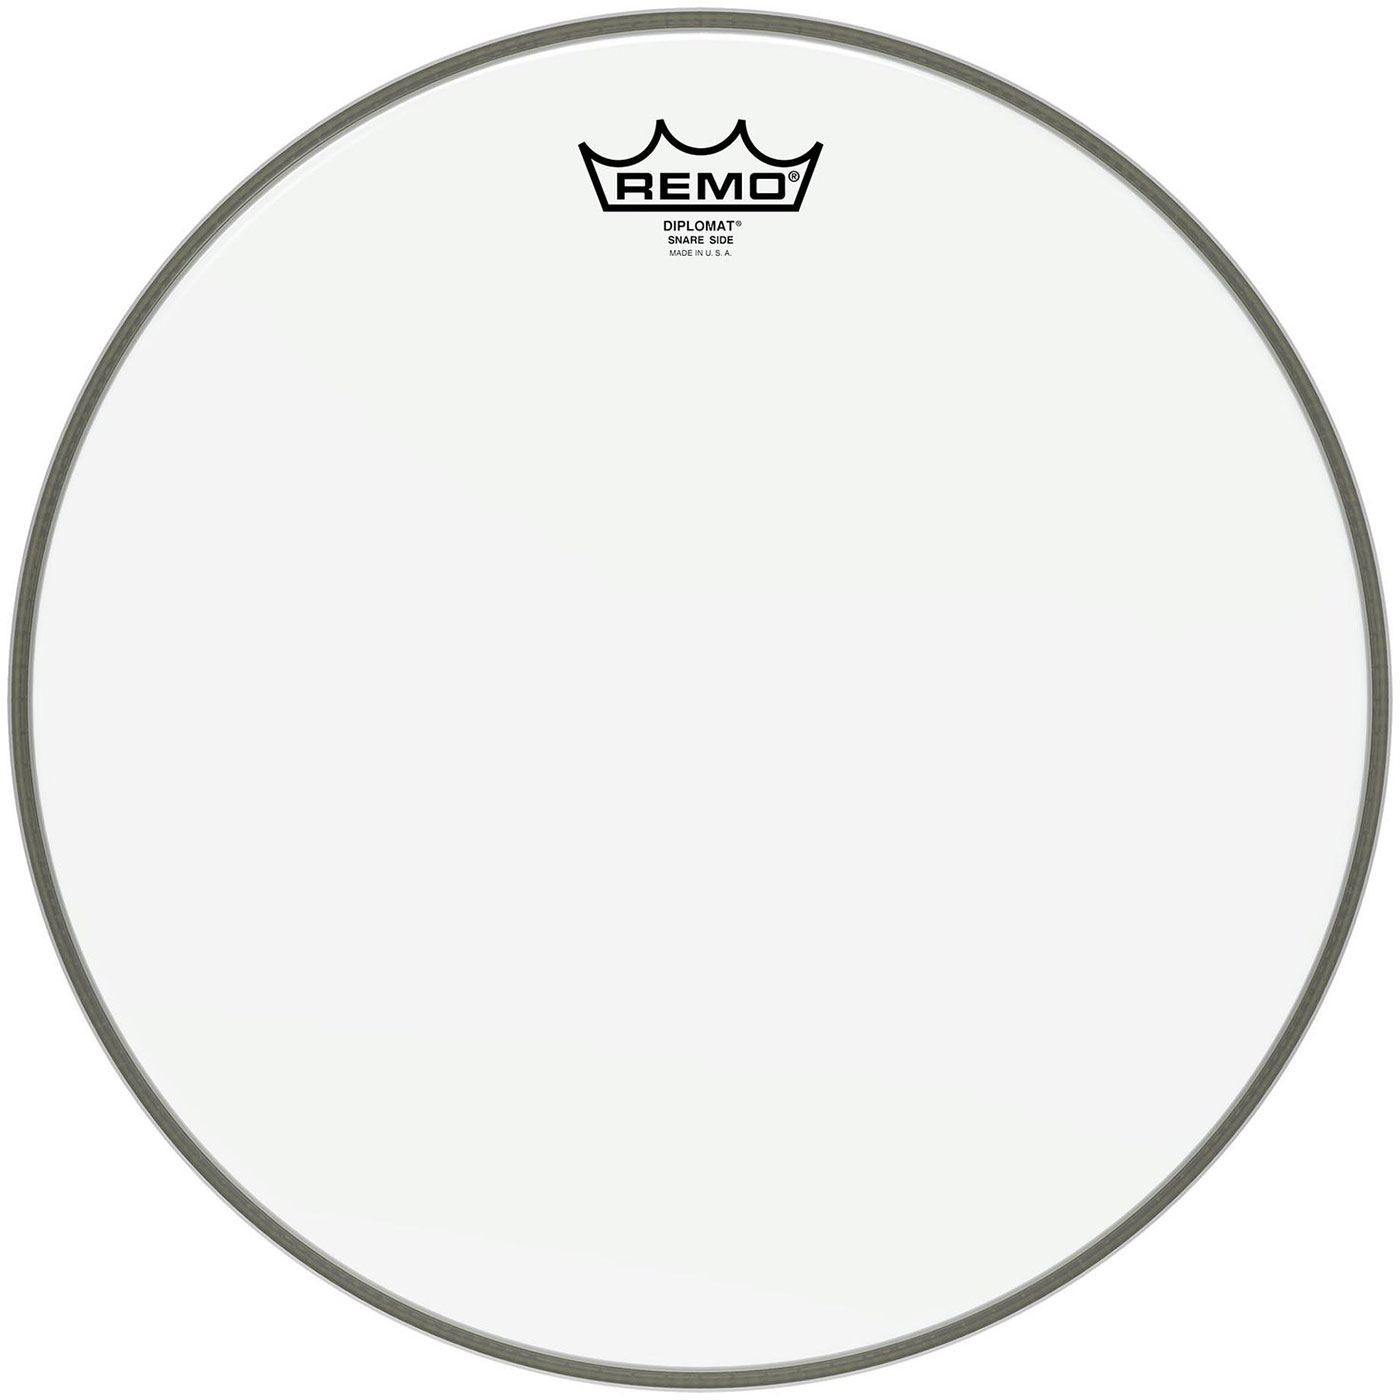 "Remo 13"" Diplomat Hazy Snare Side (Bottom) Drum Head"